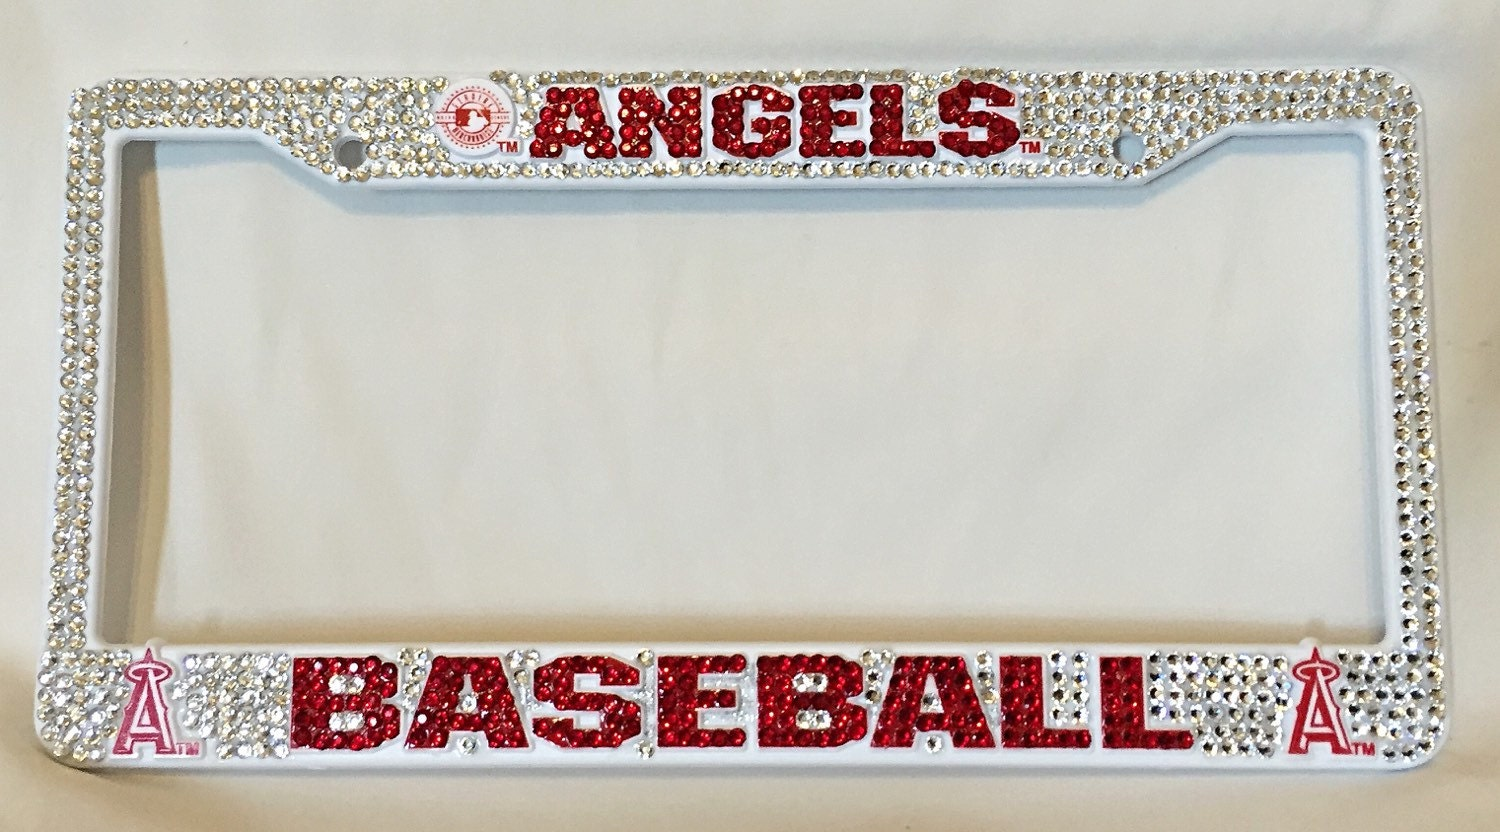 Awesome 49ers License Plate Frame Image Collection - Picture Frame ...